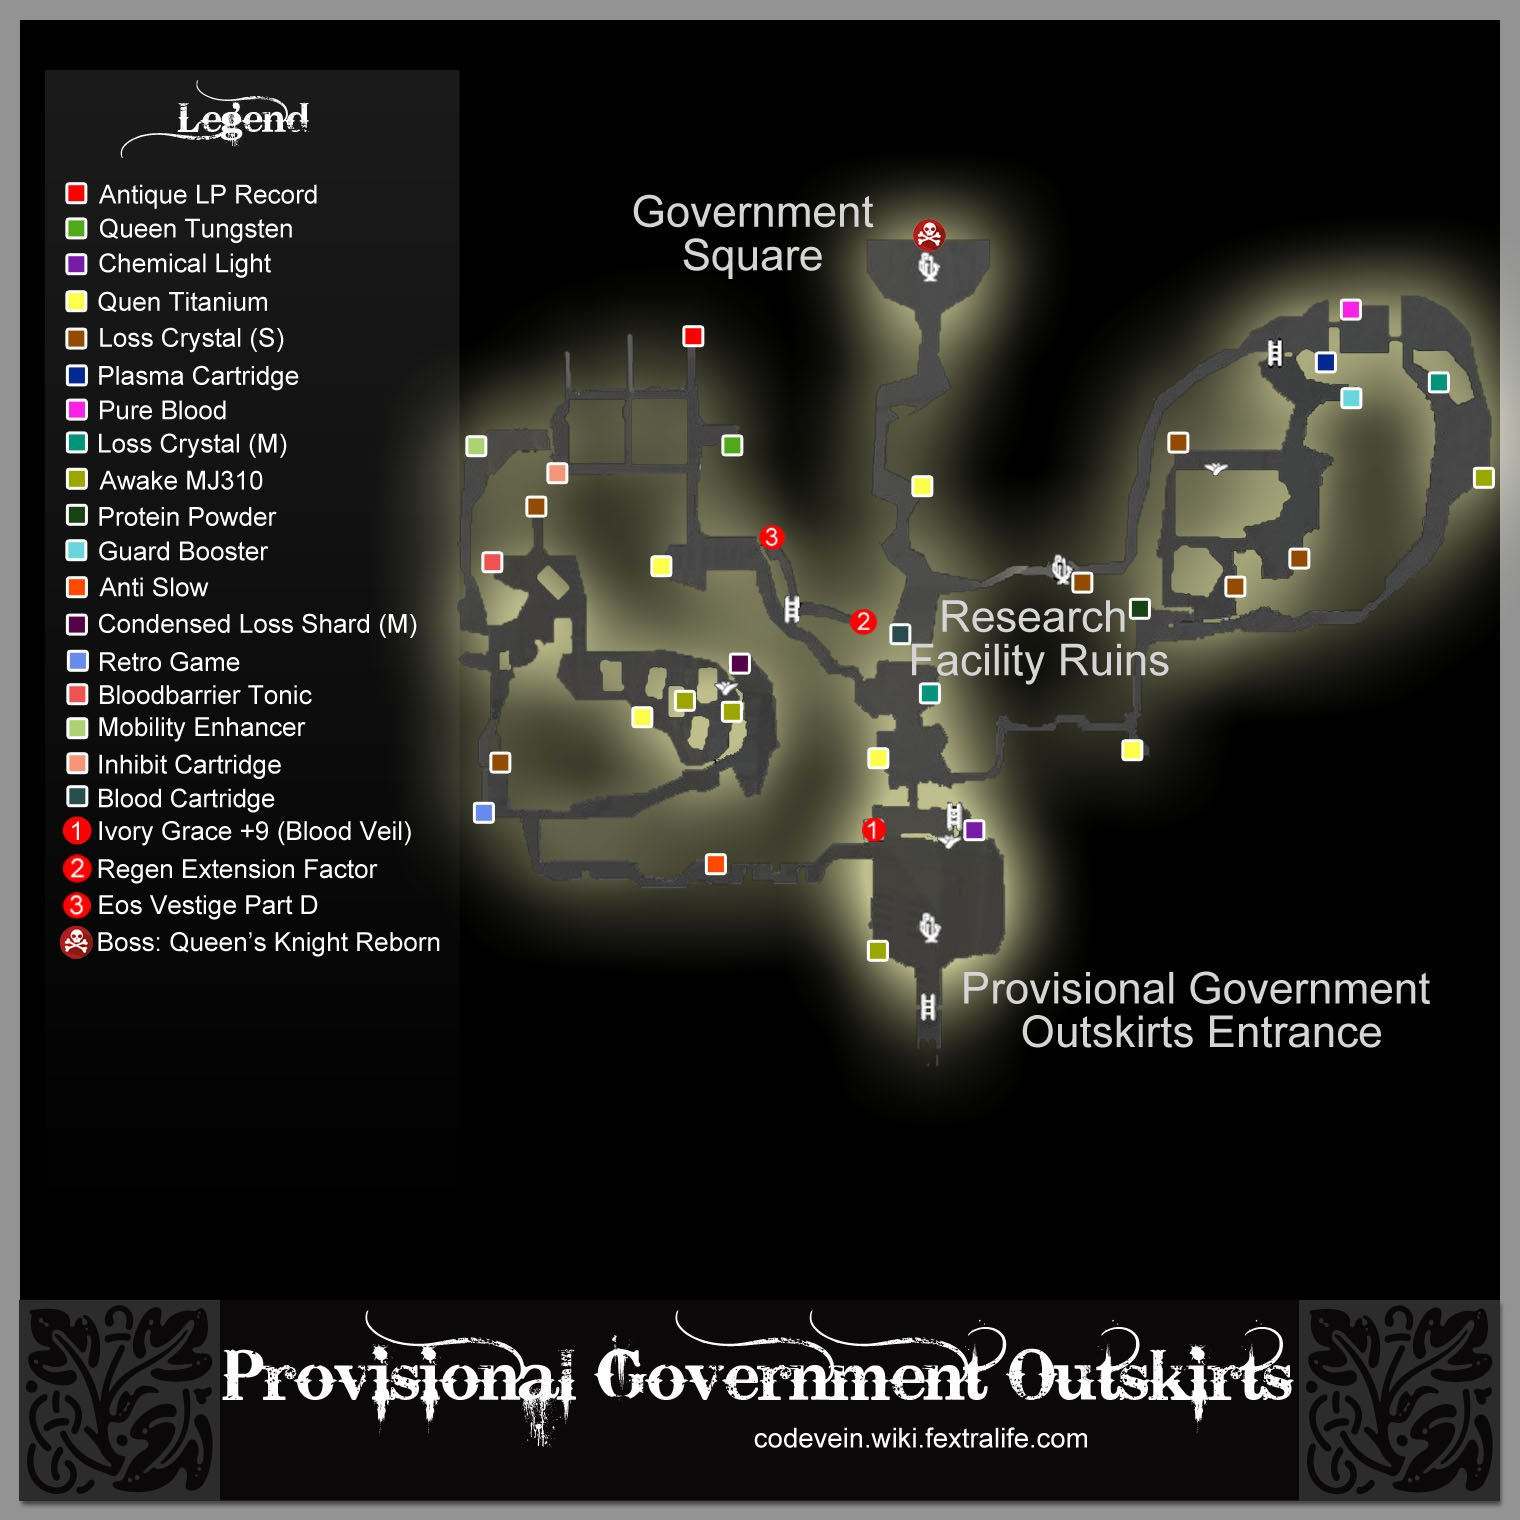 provisional_government_outrisk_map_1_code_vein_wiki_guide